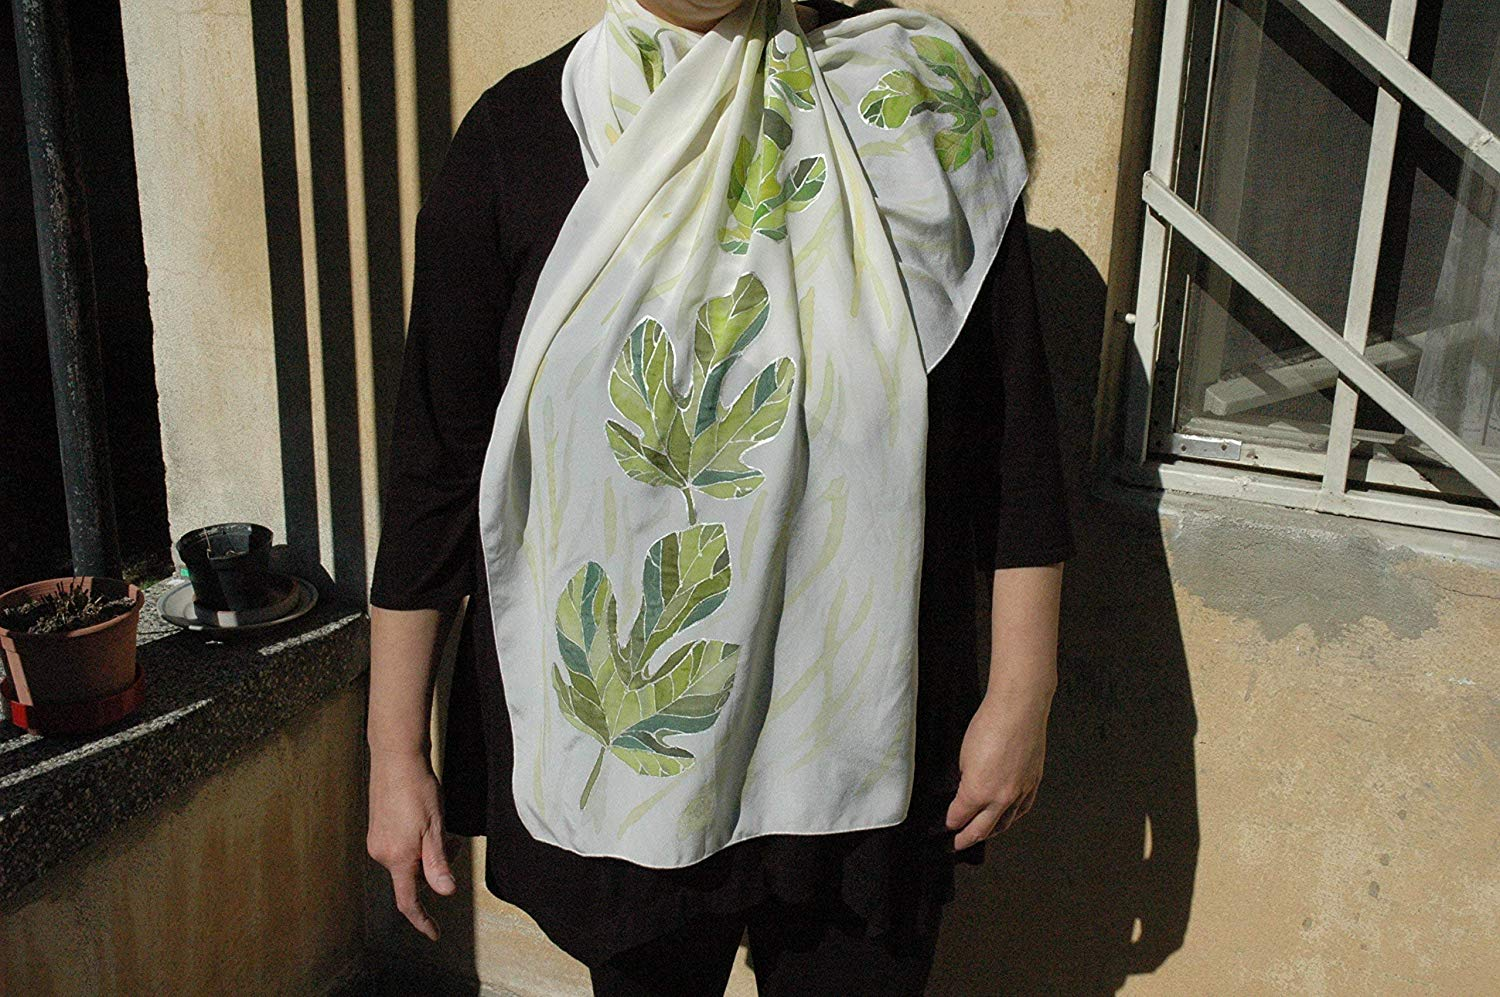 Sale!!!15% Off,Hand Painted Silk Scarf with Fig Leaves/Fig Tree/Scarf gift for wife/Leaf Art/Leaf Decor/Design scarf/Fig Leaves scarf Painted/Gift Woman/